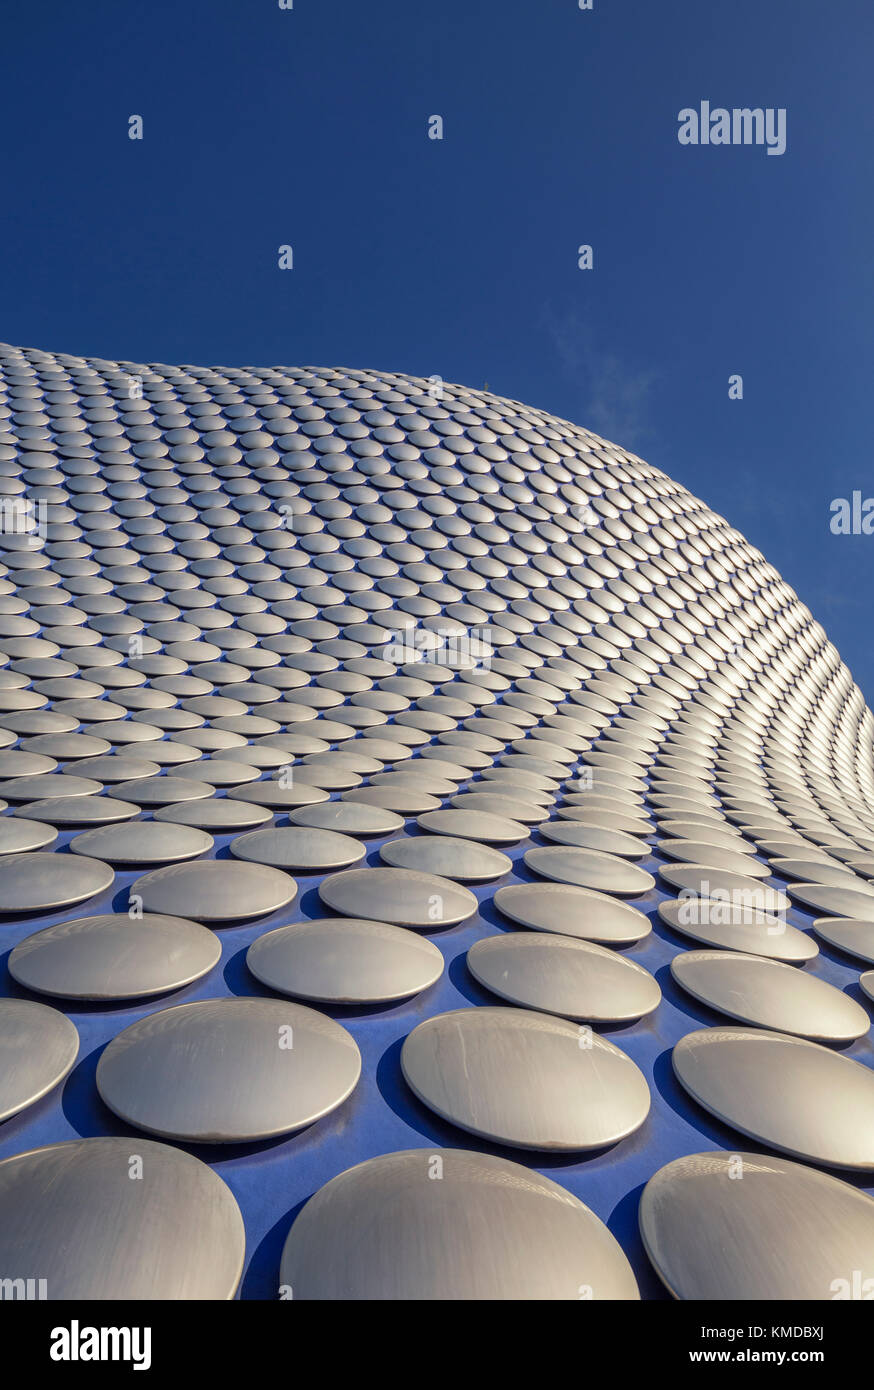 Architecture of  Bullring Building in Birmingham UK - Stock Image